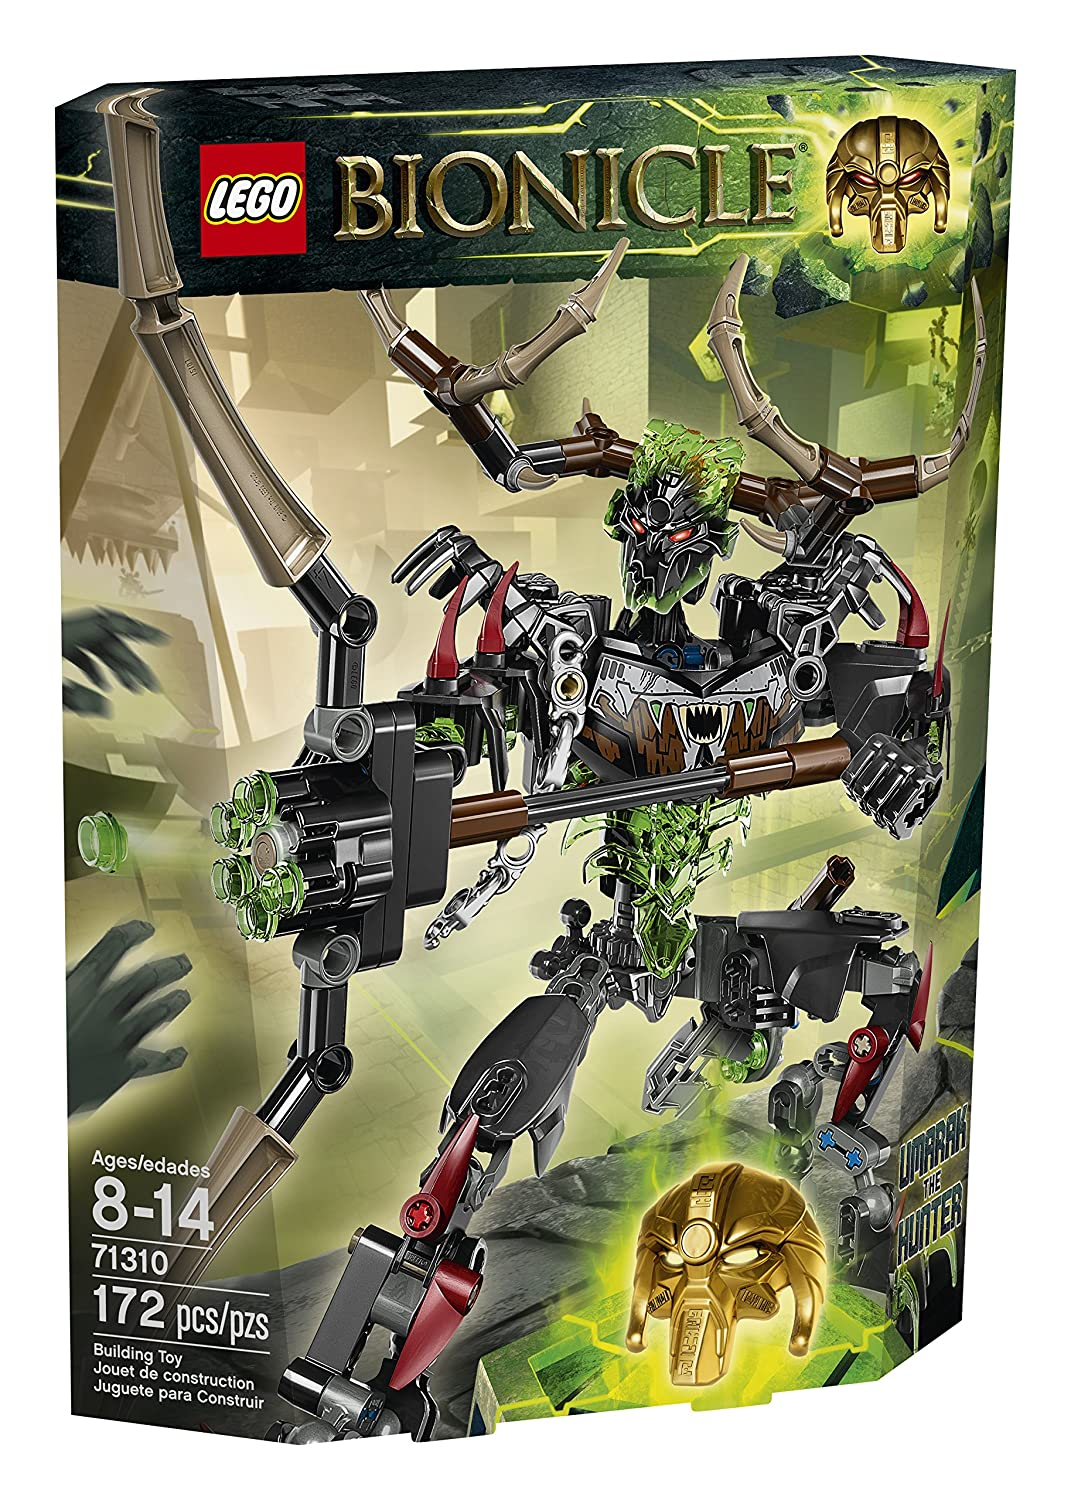 Top 15 Best Lego BIONICLE Sets Reviews in 2020 13